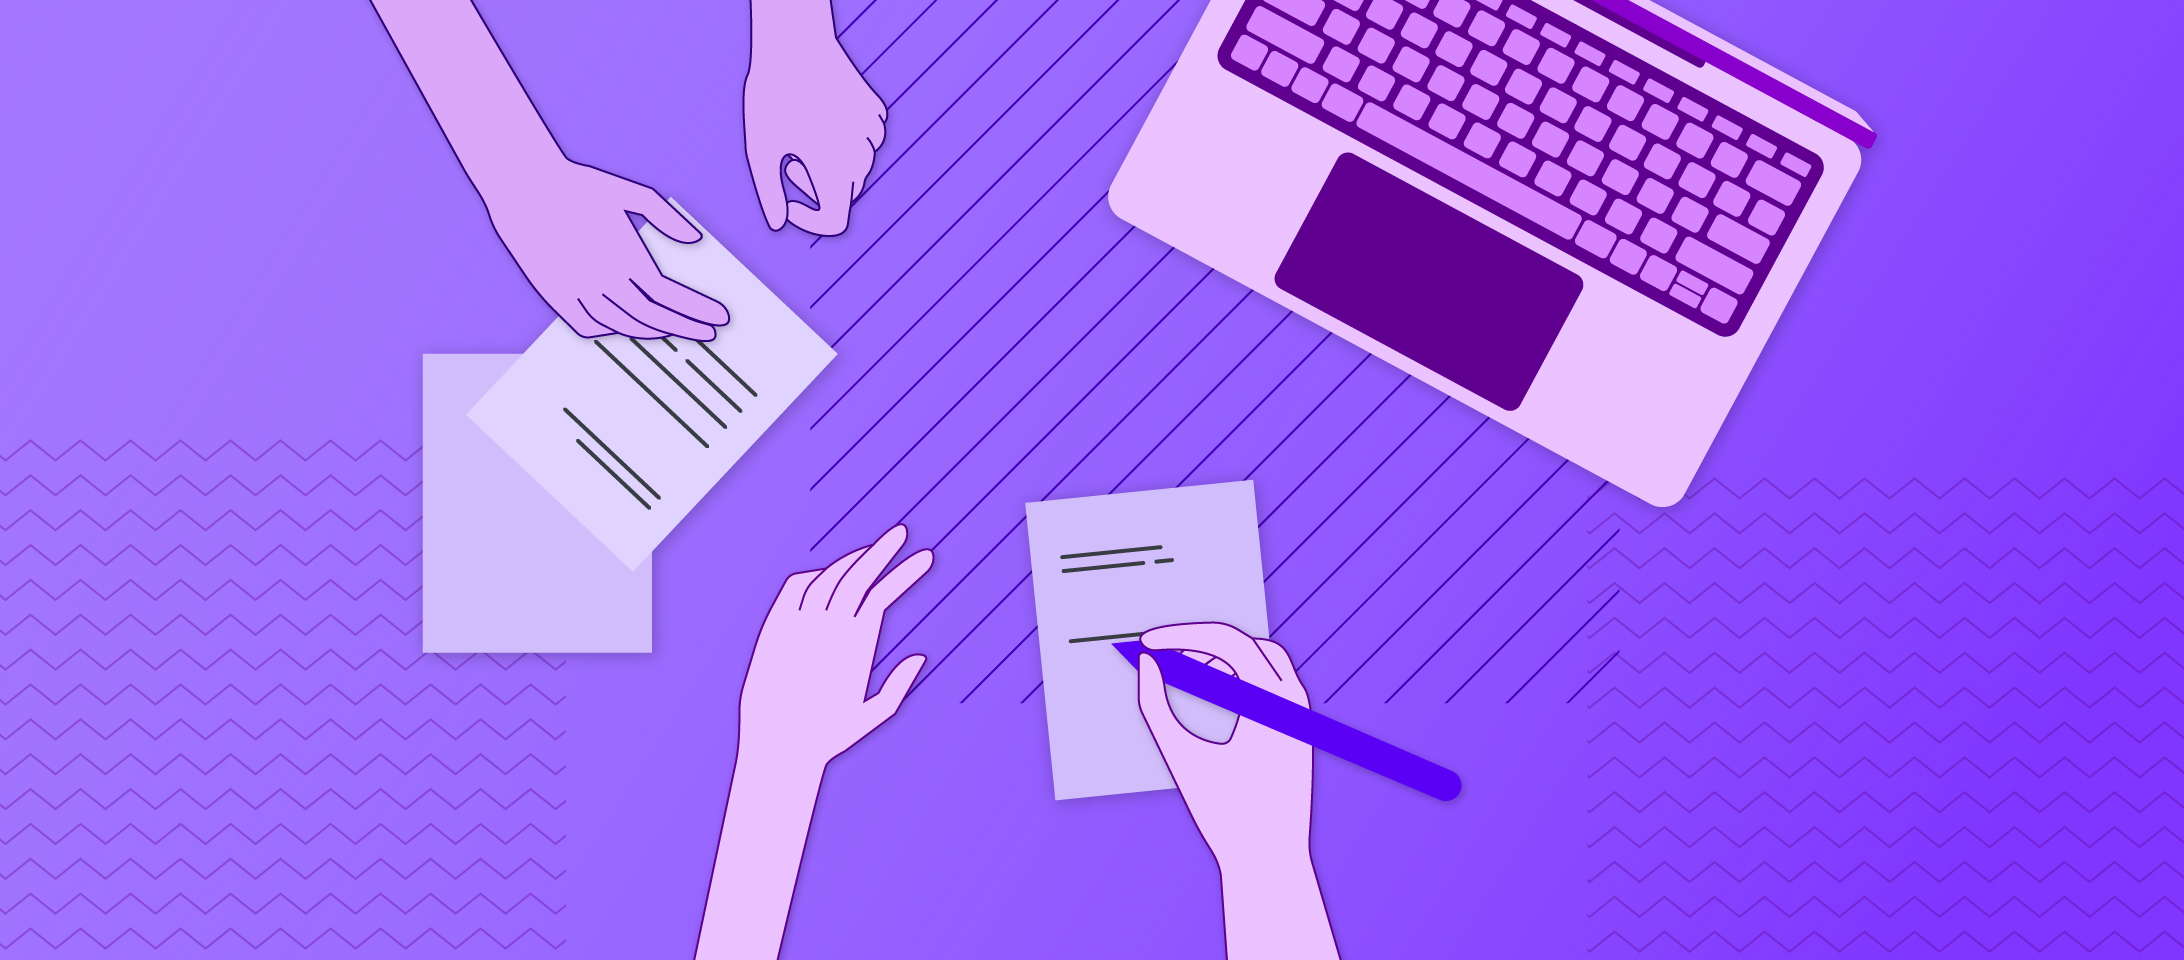 Illustration of an overhead view of two pairs of hands writing notes next to an open laptop